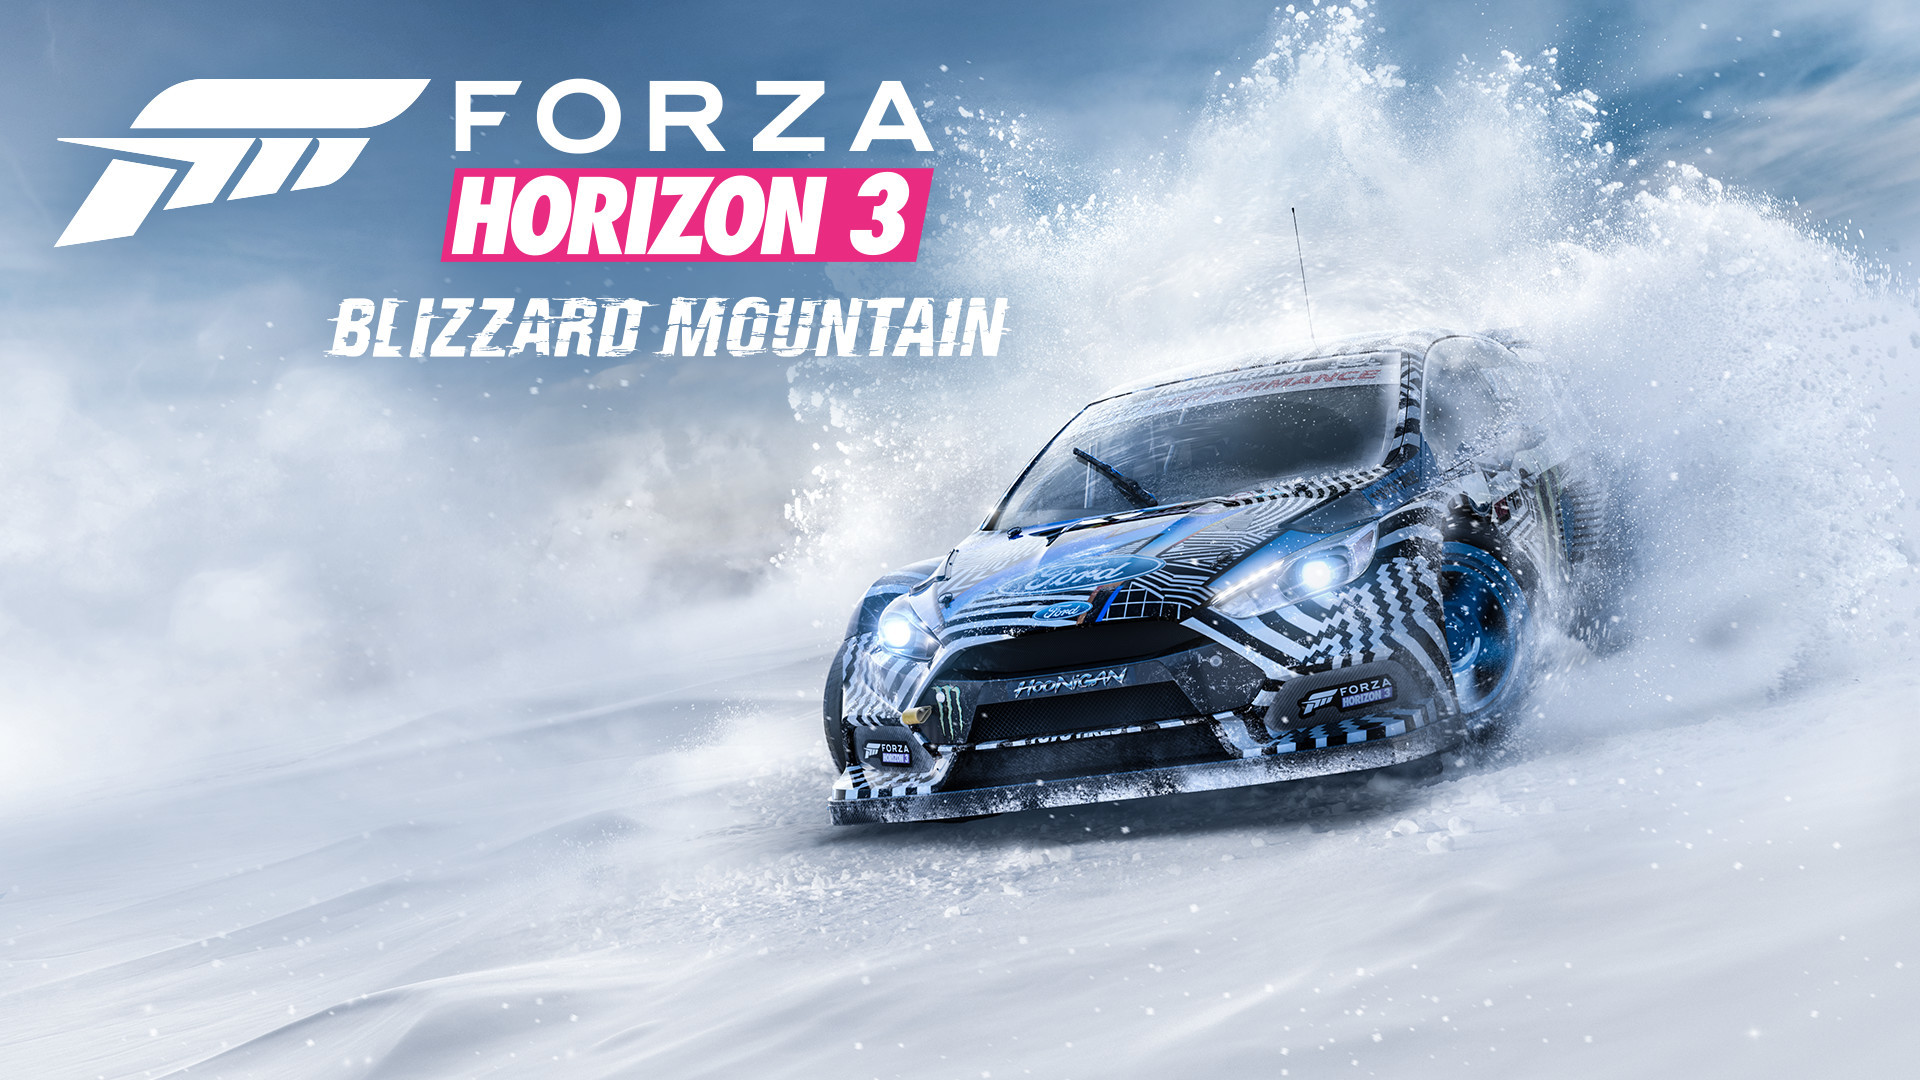 Forza Horizon 3's Blizzard Mountain Expansion Arrives Today